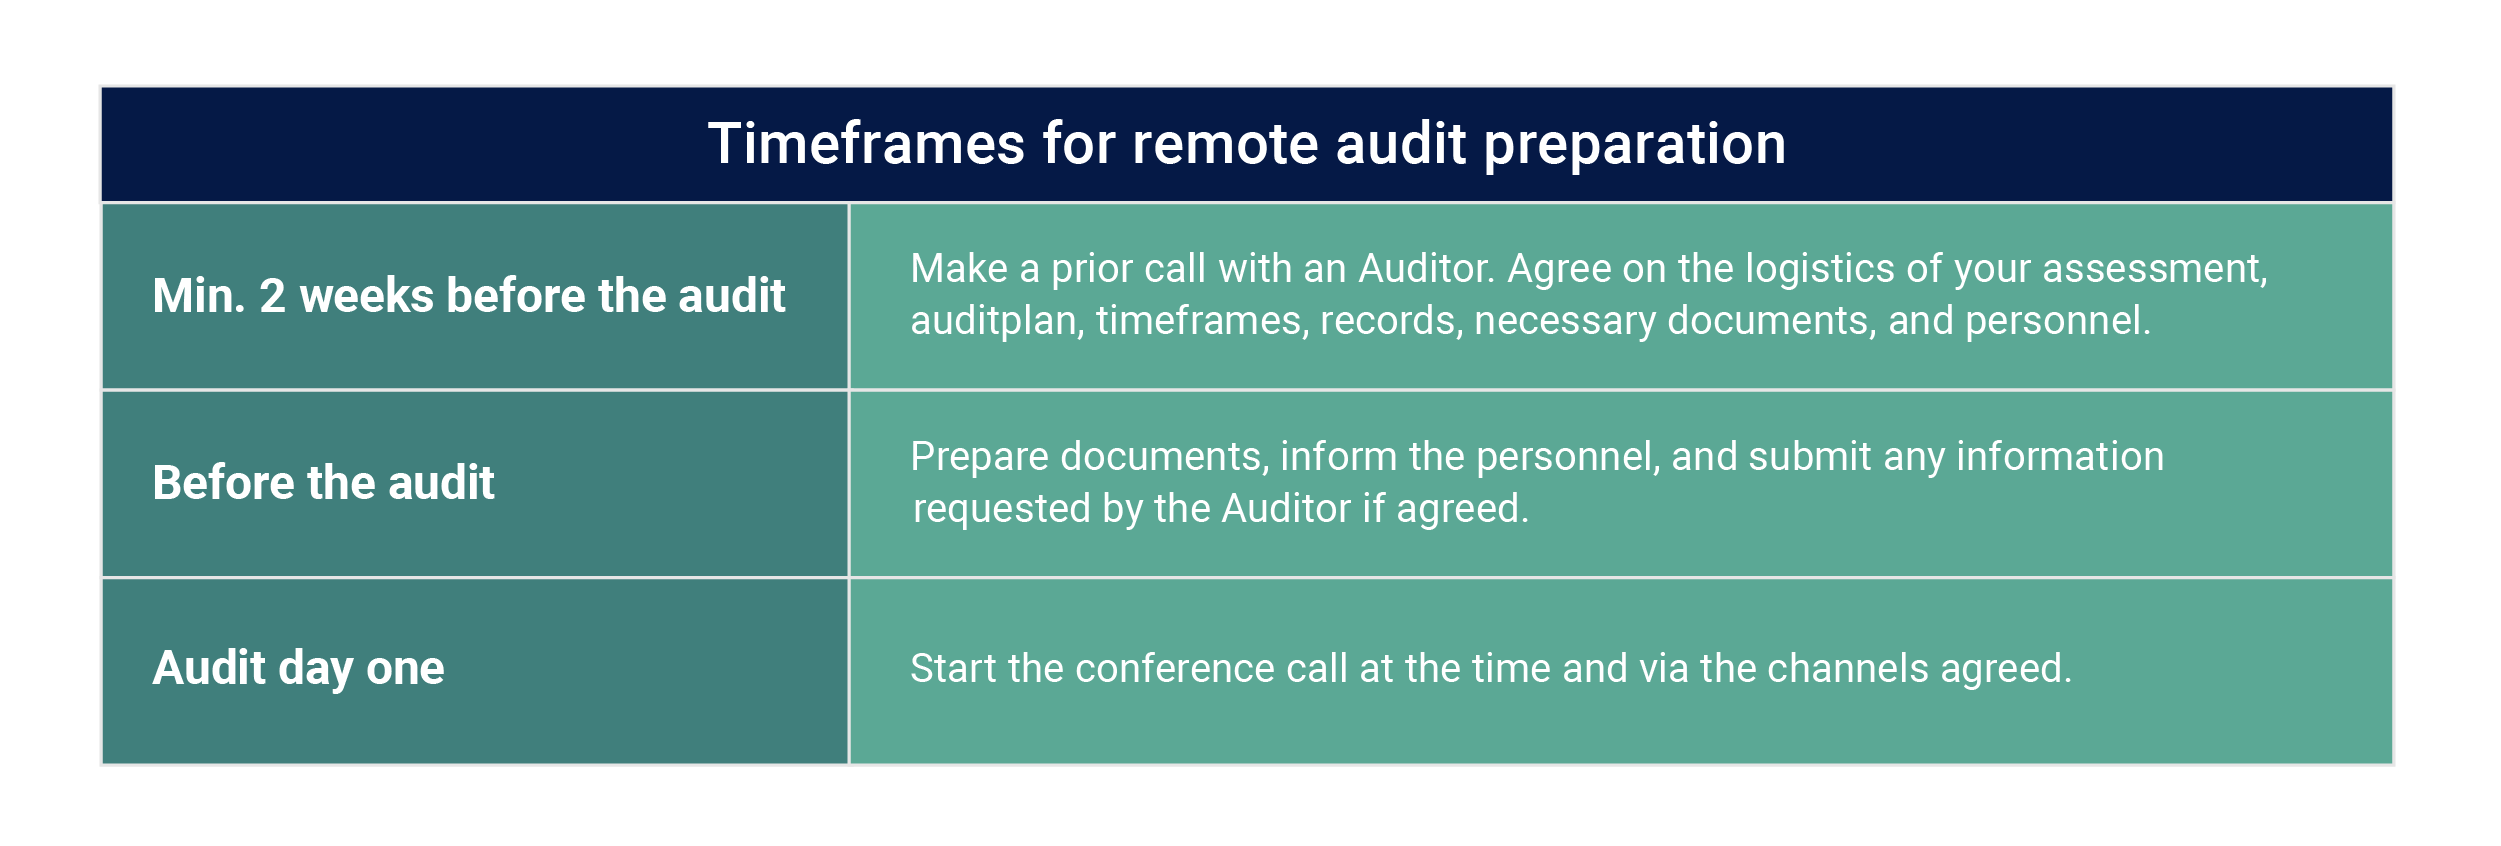 Remote audit tool, iso27001 audit